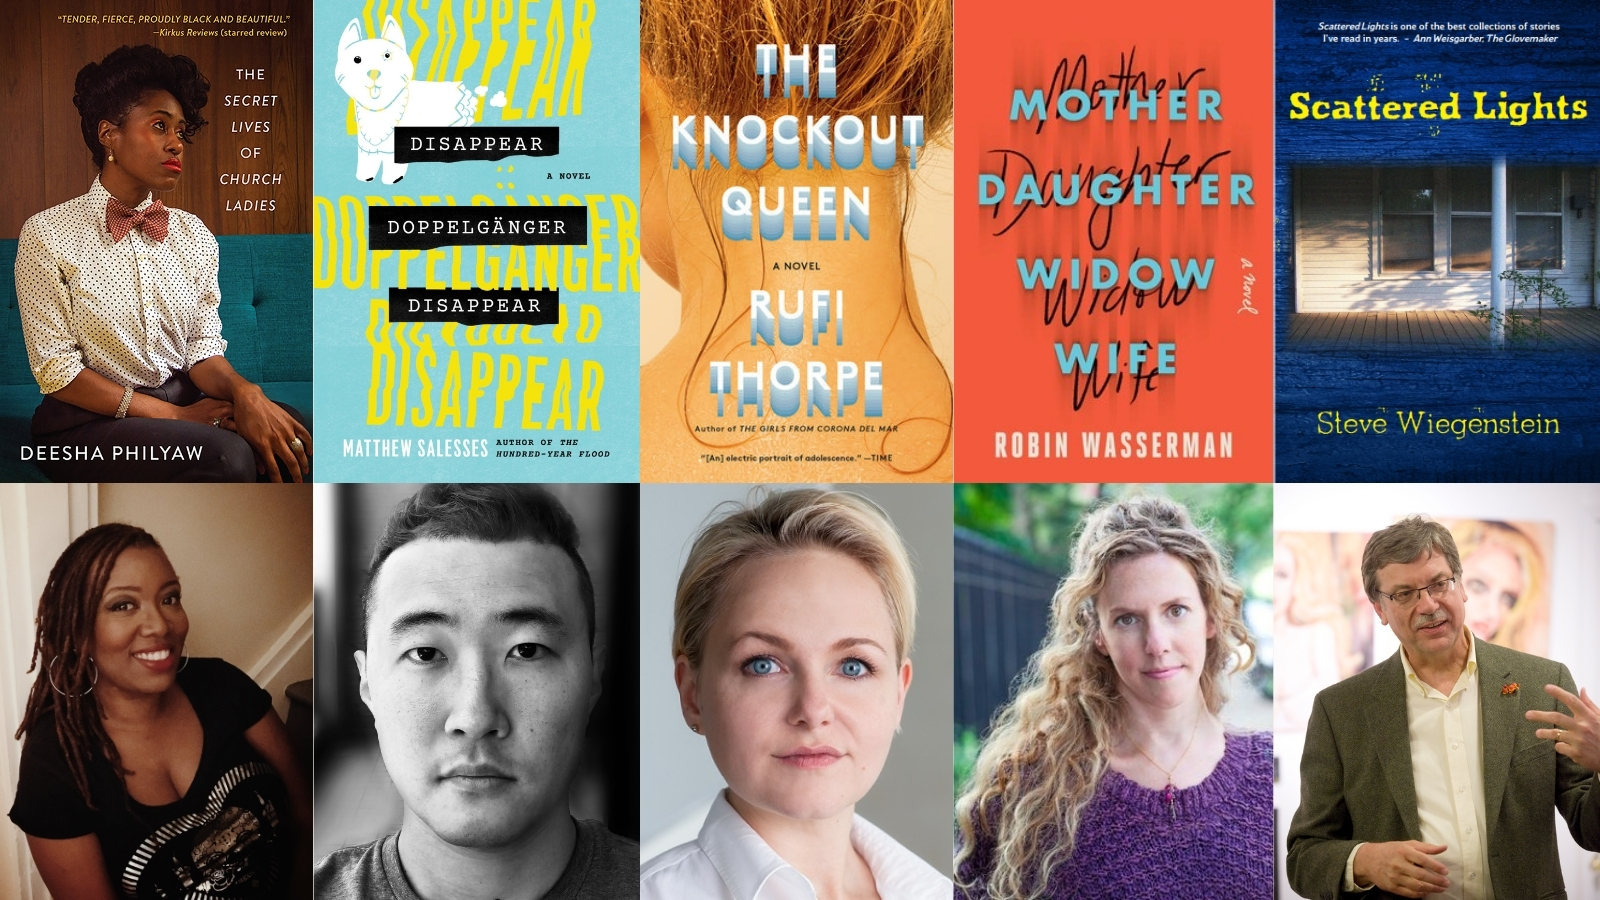 """Book covers of """"The Secret Lives of Church Ladies,"""" """"Disappear Doppelgänger Disappear,"""" """"The Knockout Queen,"""" """"Mother Daughter Widow Wife,"""" and """"Scattered Lights"""" above headshots of authors Deesha Philyaw, Matthew Salesses, Rufi Thorpe, Robin Wasserman, and Steve Wiegenstein"""